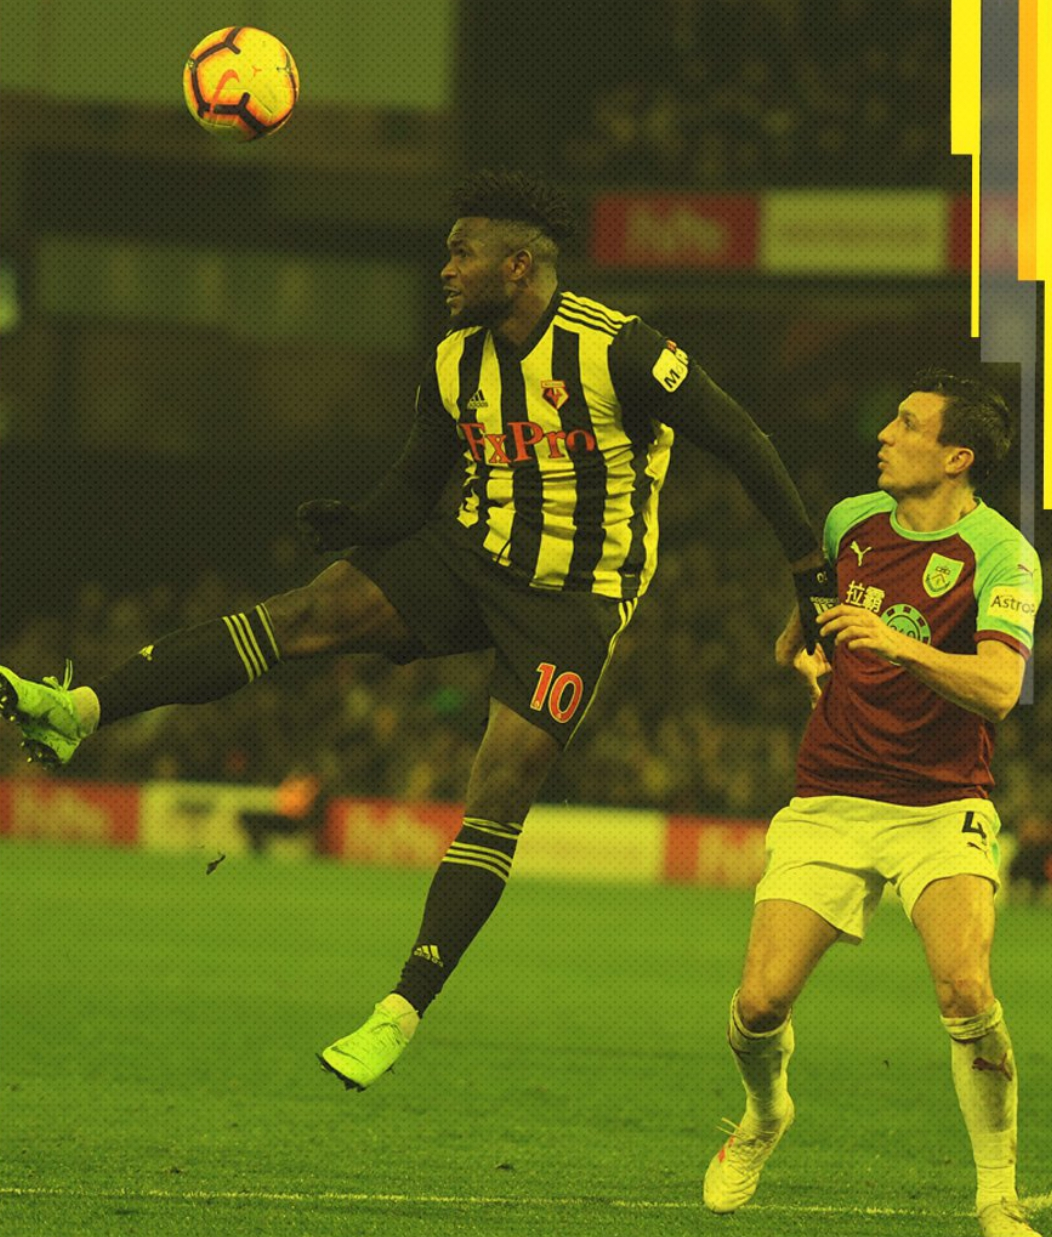 EPL: Success Plays 14th Sub Role  In Watford Draw, Balogun Benched; Another 7-Goal Thriller As Liverpool Edge Palace